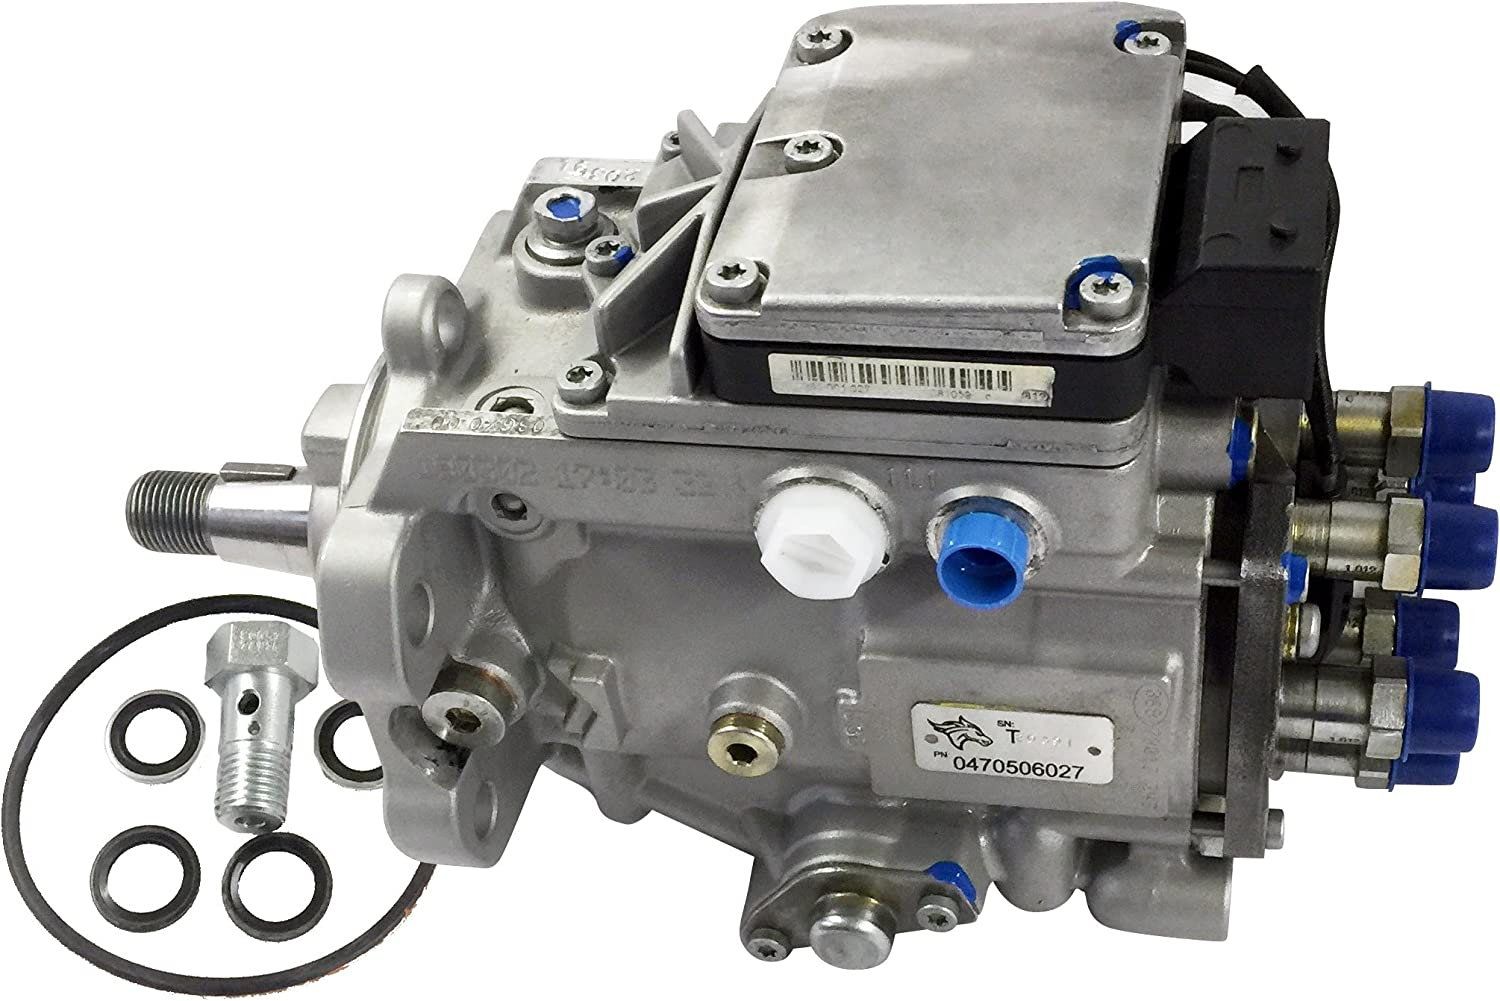 VP44 Fuel Injection Pump 98.5-02 Dodge Cummins Auto/5 Speed; 98.5-99 6 speed non HO